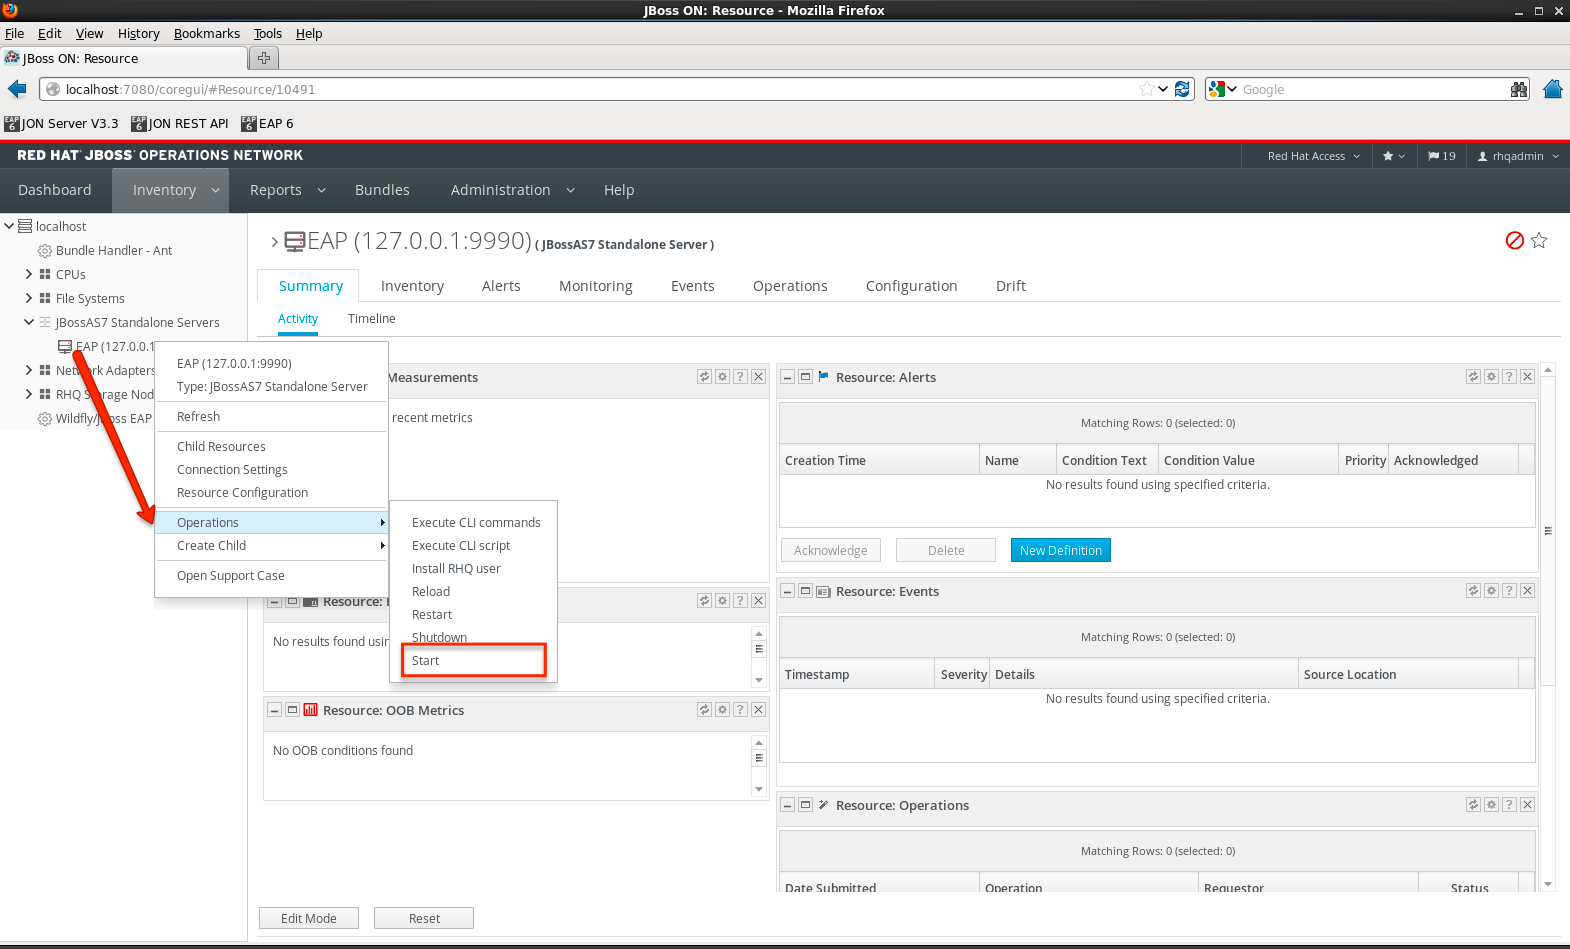 Inventory - JBoss EAP successfully imported